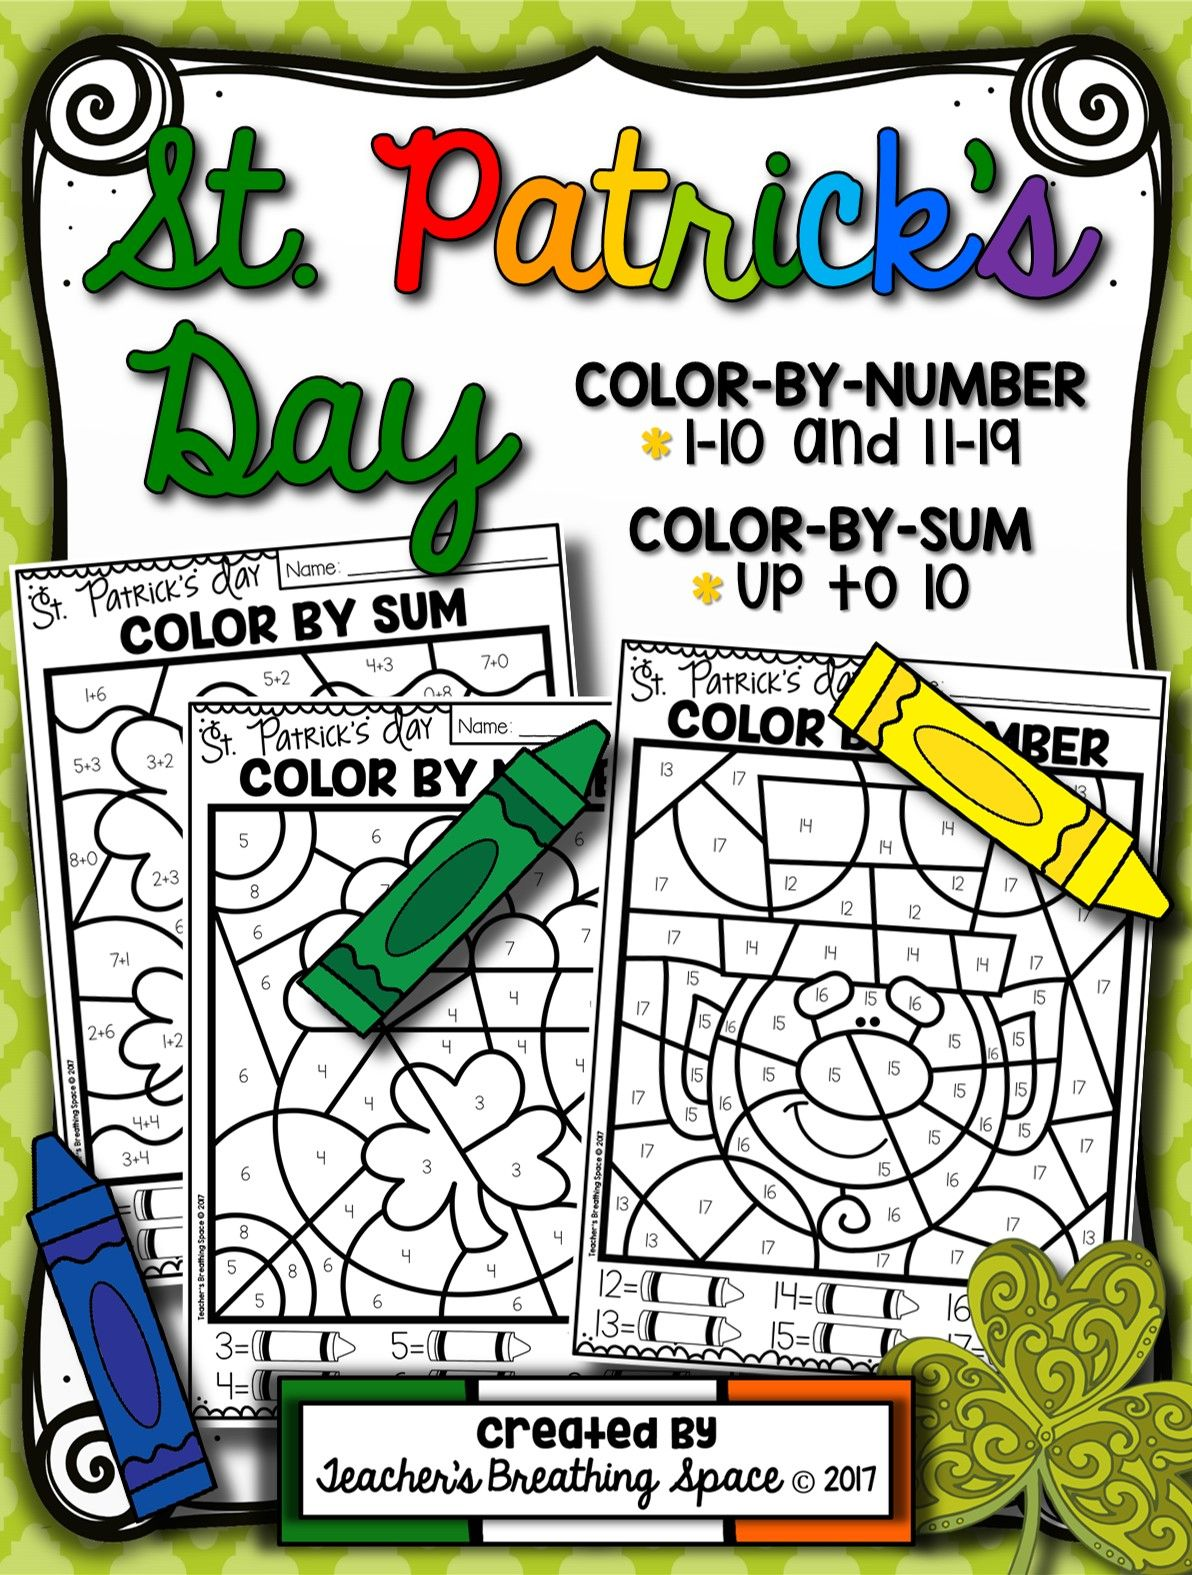 St Patrick S Day Color By Number 1 10 Amp 11 19 And Color